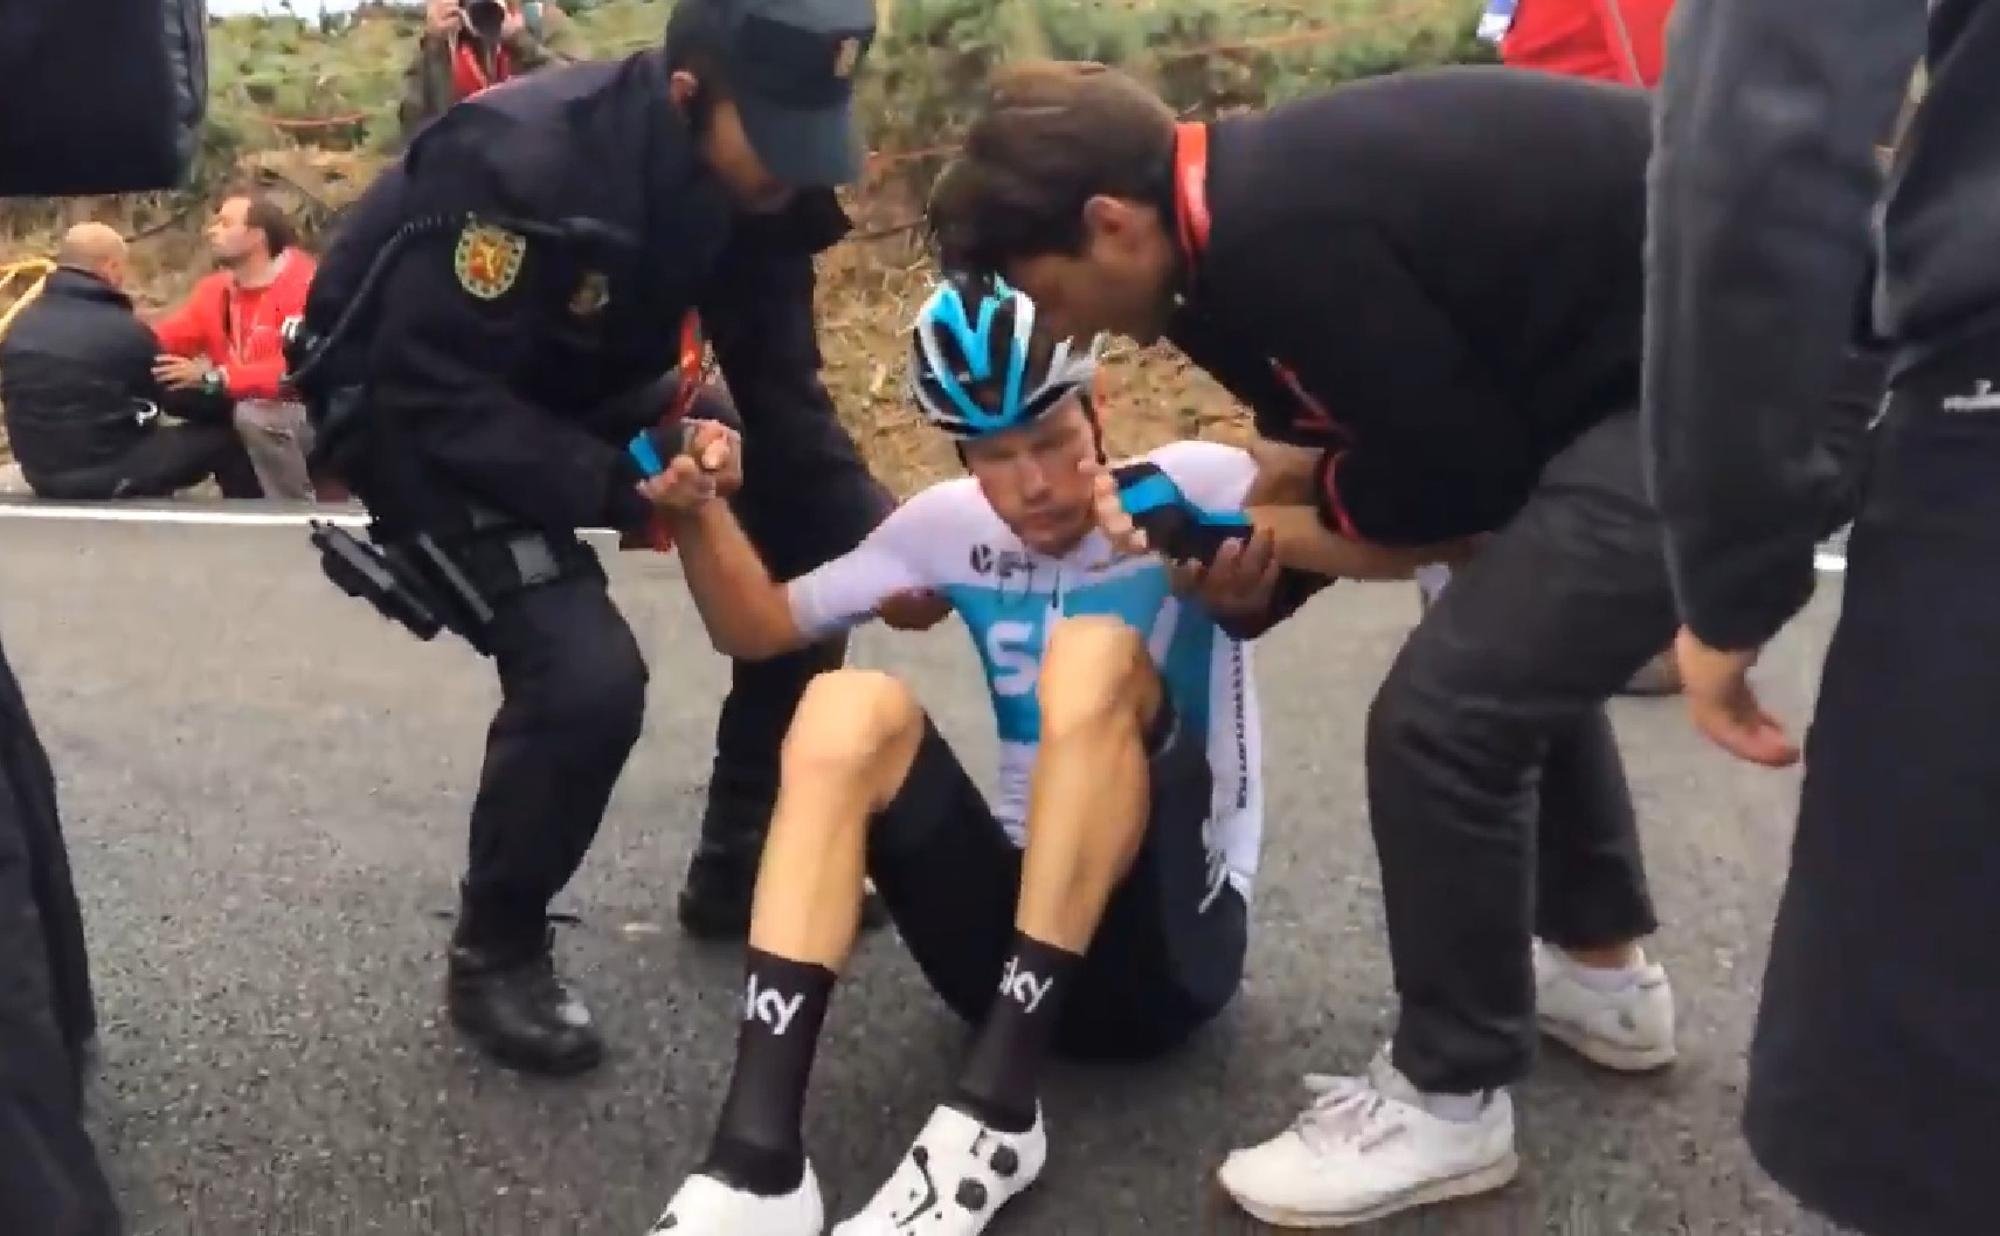 Dutchmen van Baarle reacts after colliding into the bungling race official